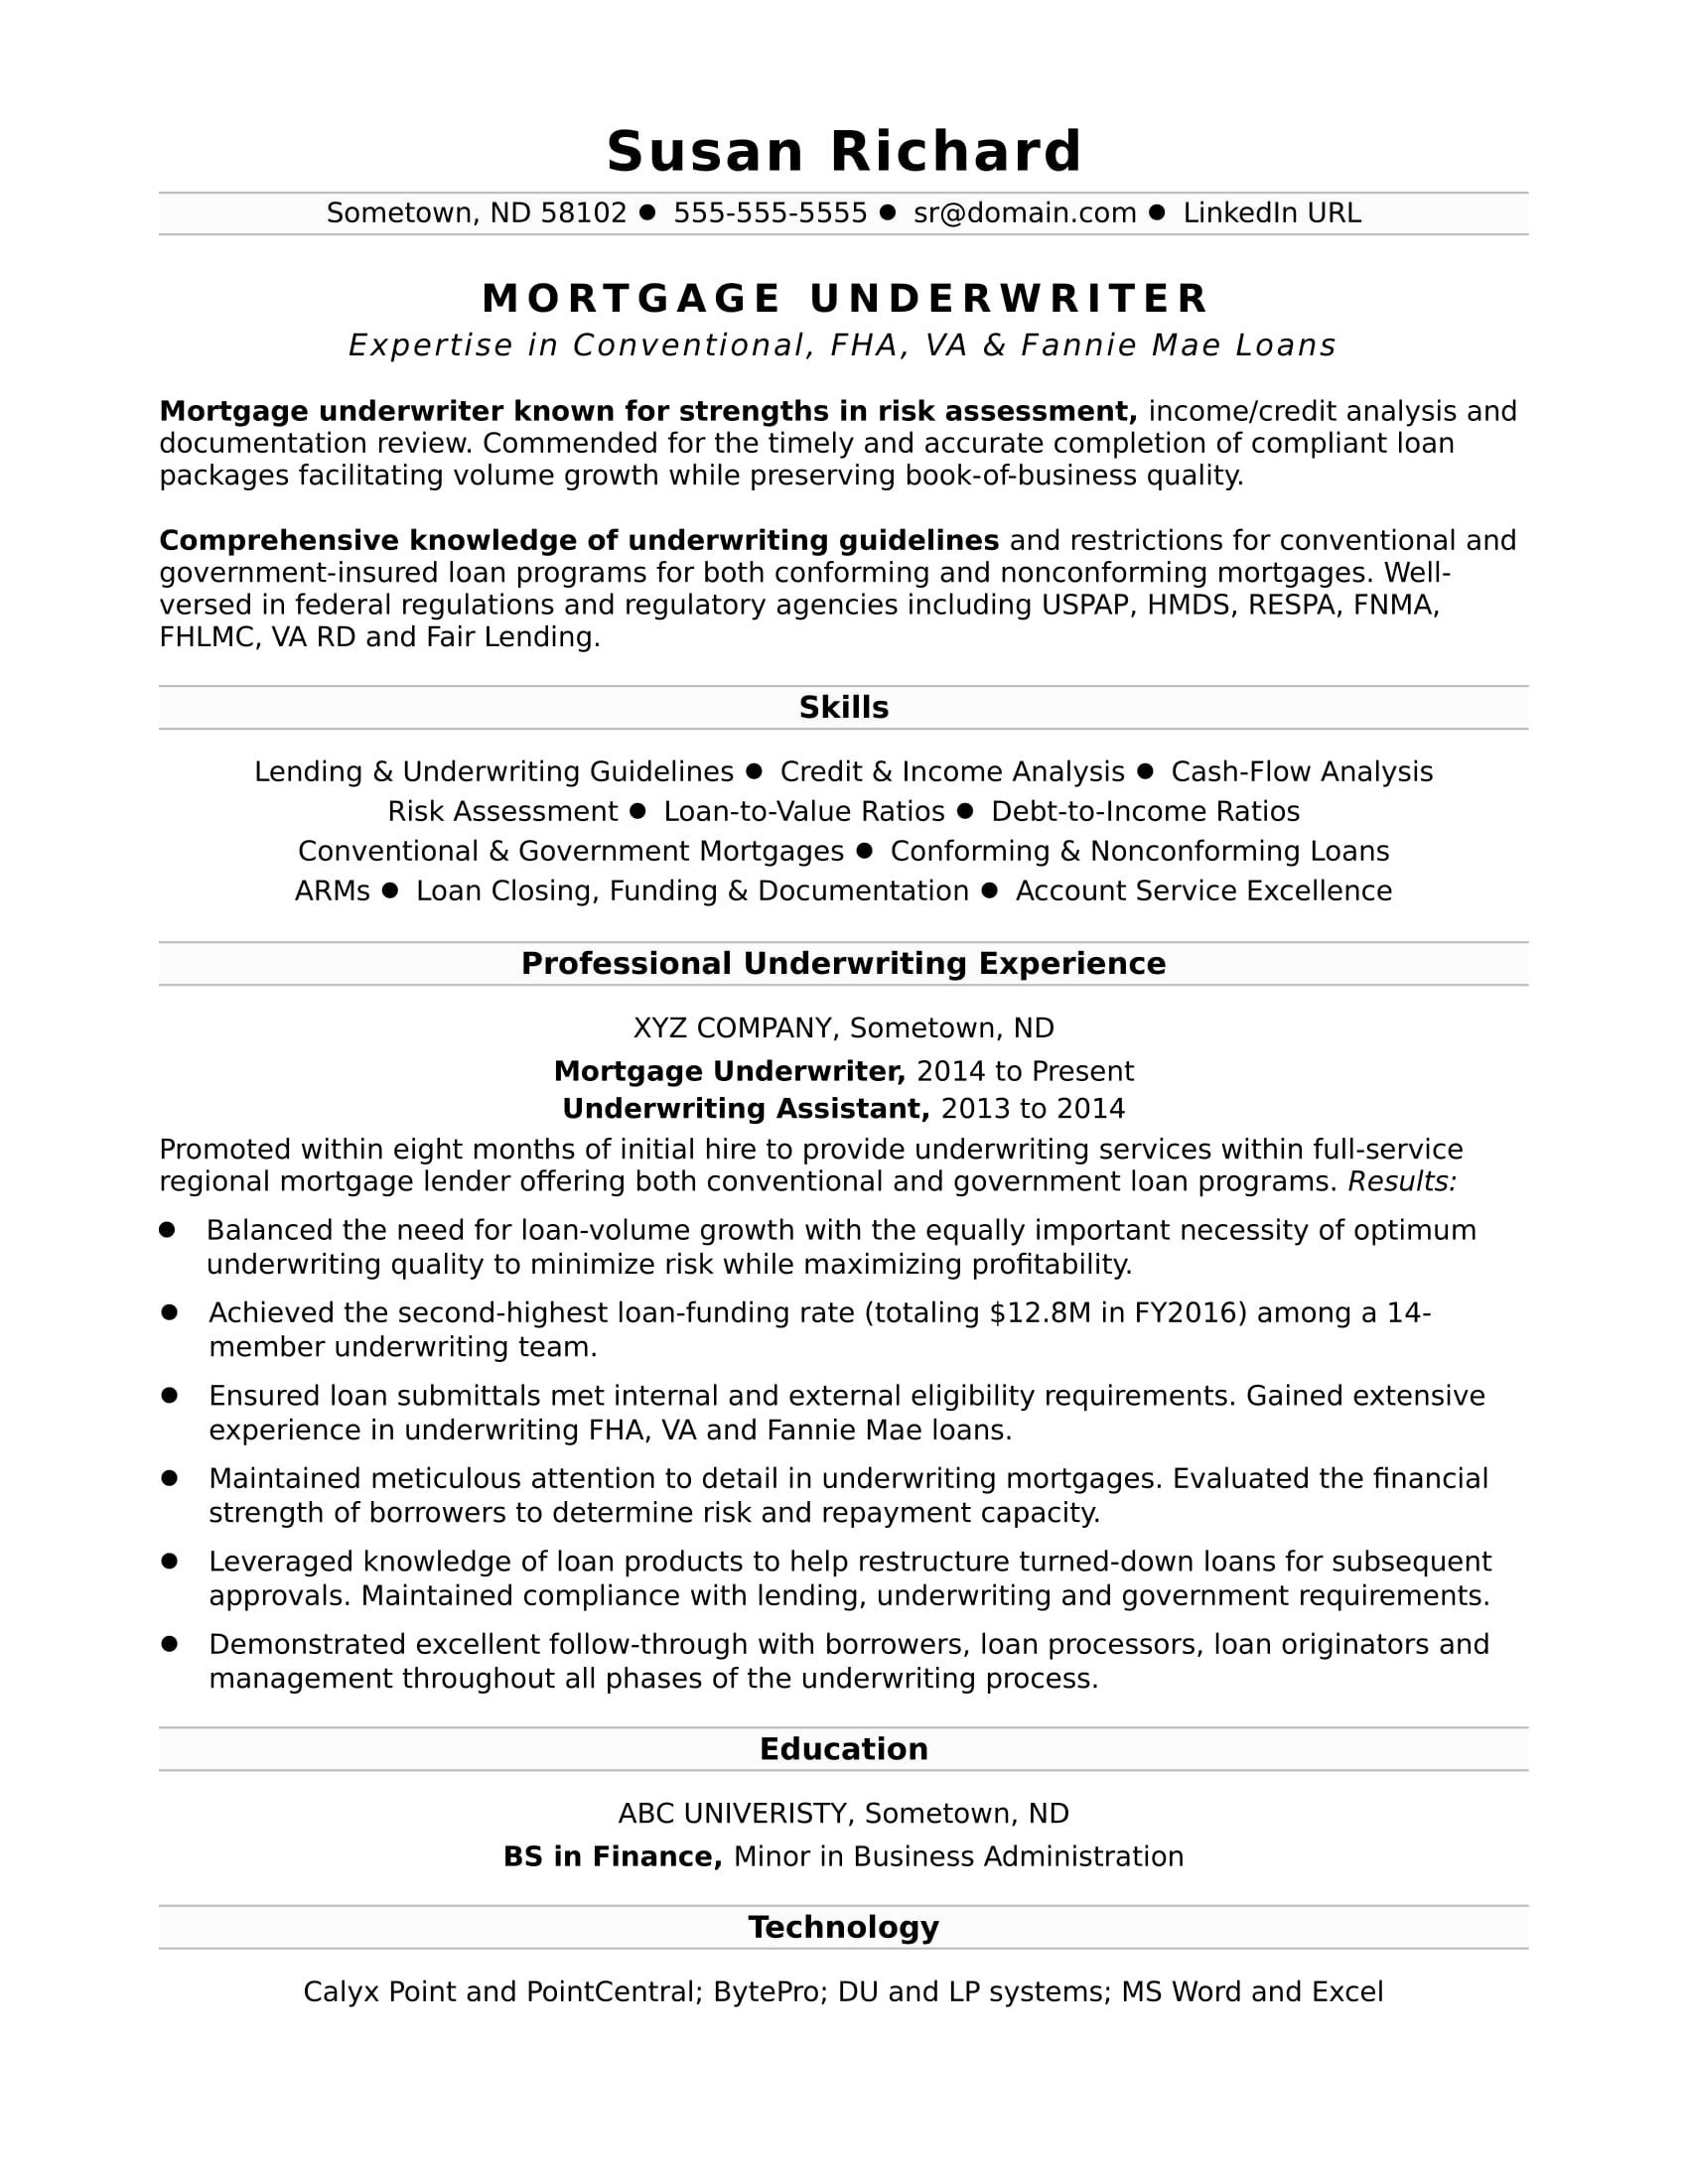 Dishwasher Job Description Sample - My Resume Unique 46 Elegant S Dishwasher Job Description for